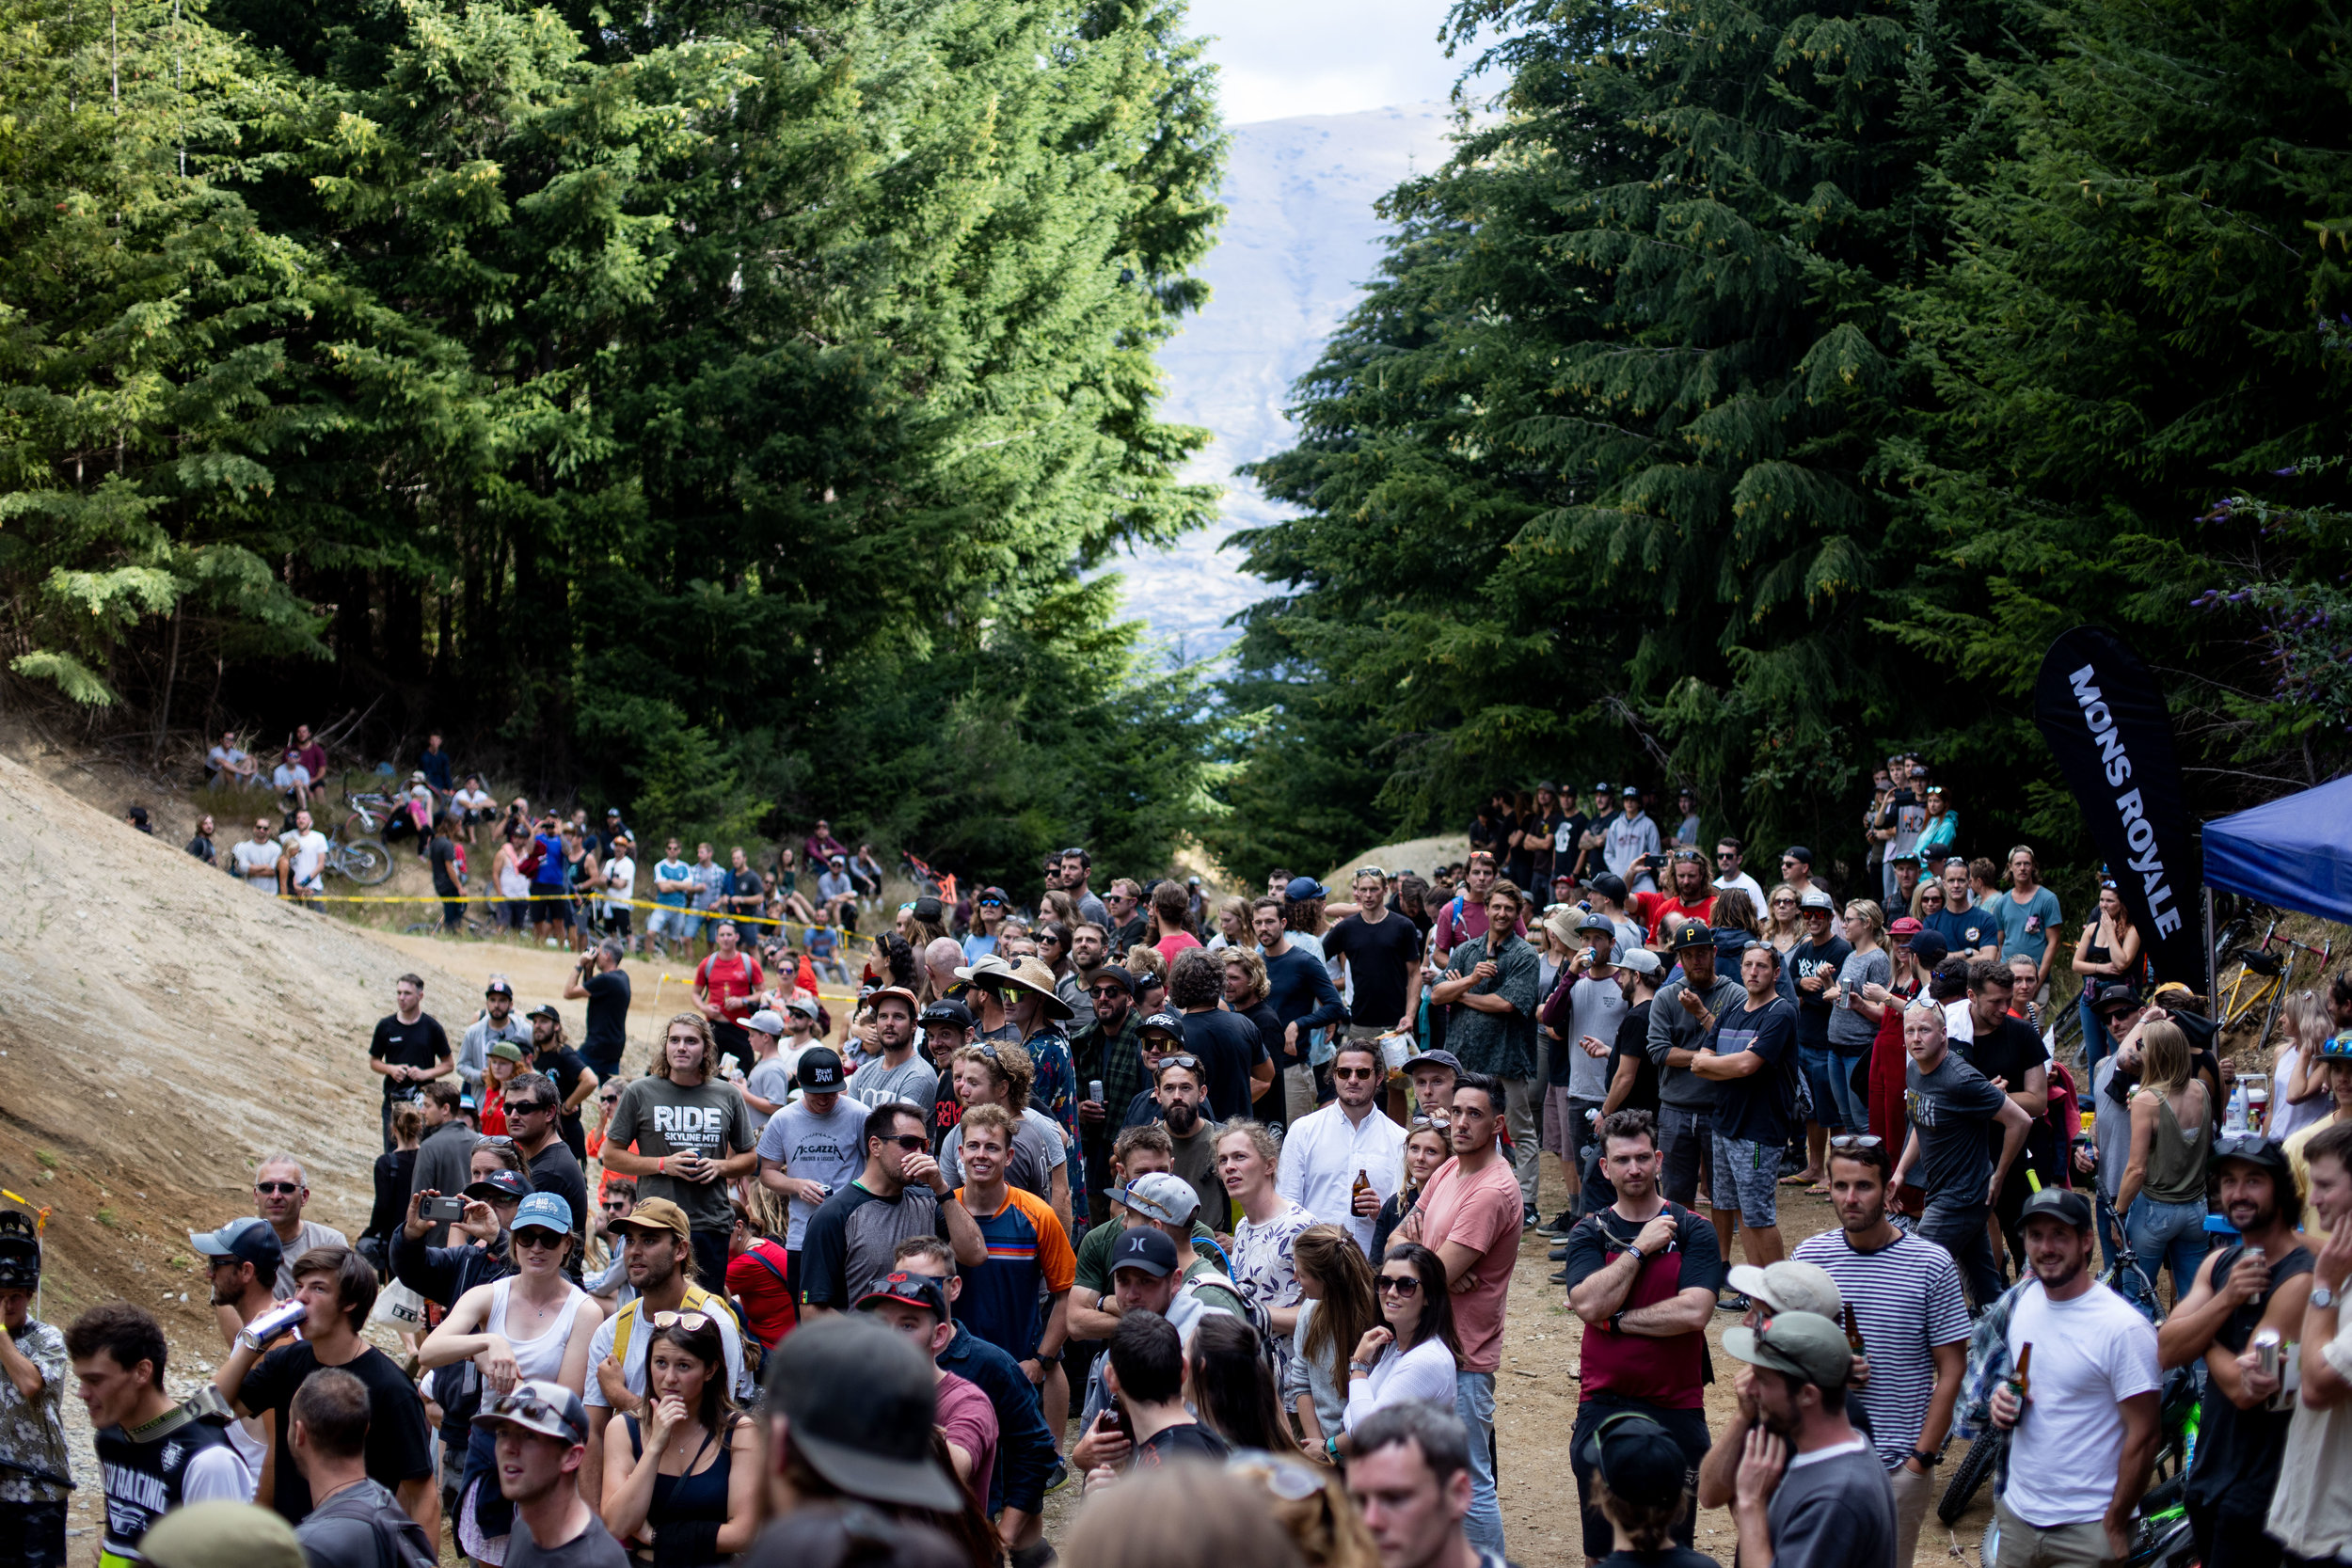 Crowd rolling in to watch the show go down.